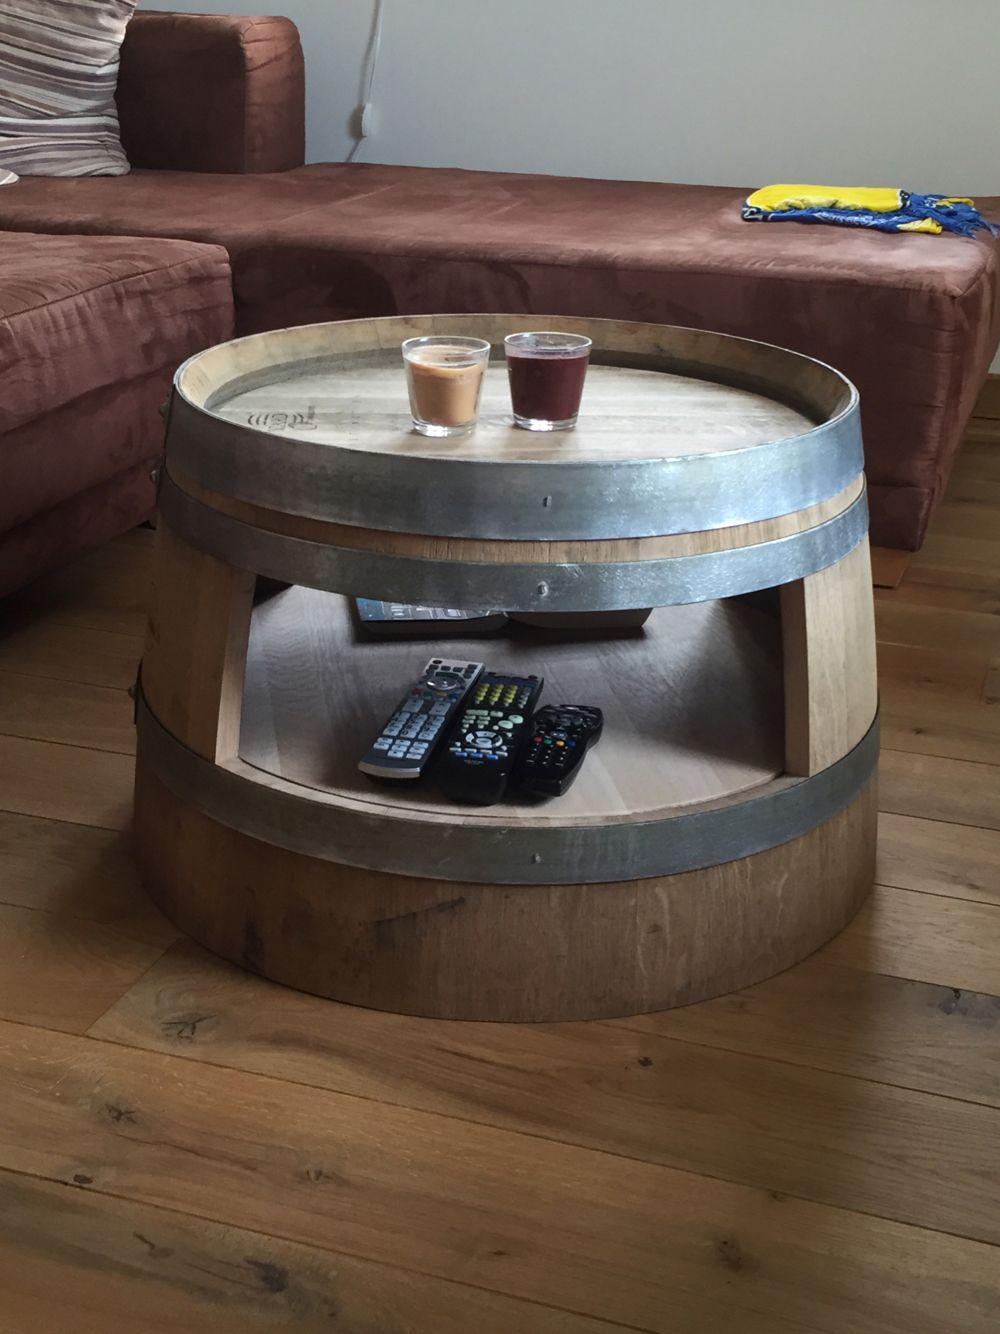 Couchtisch Two And A Half Men Weinfass Couchtisch Mit Einlegeboden Own Home Pinterest Diy